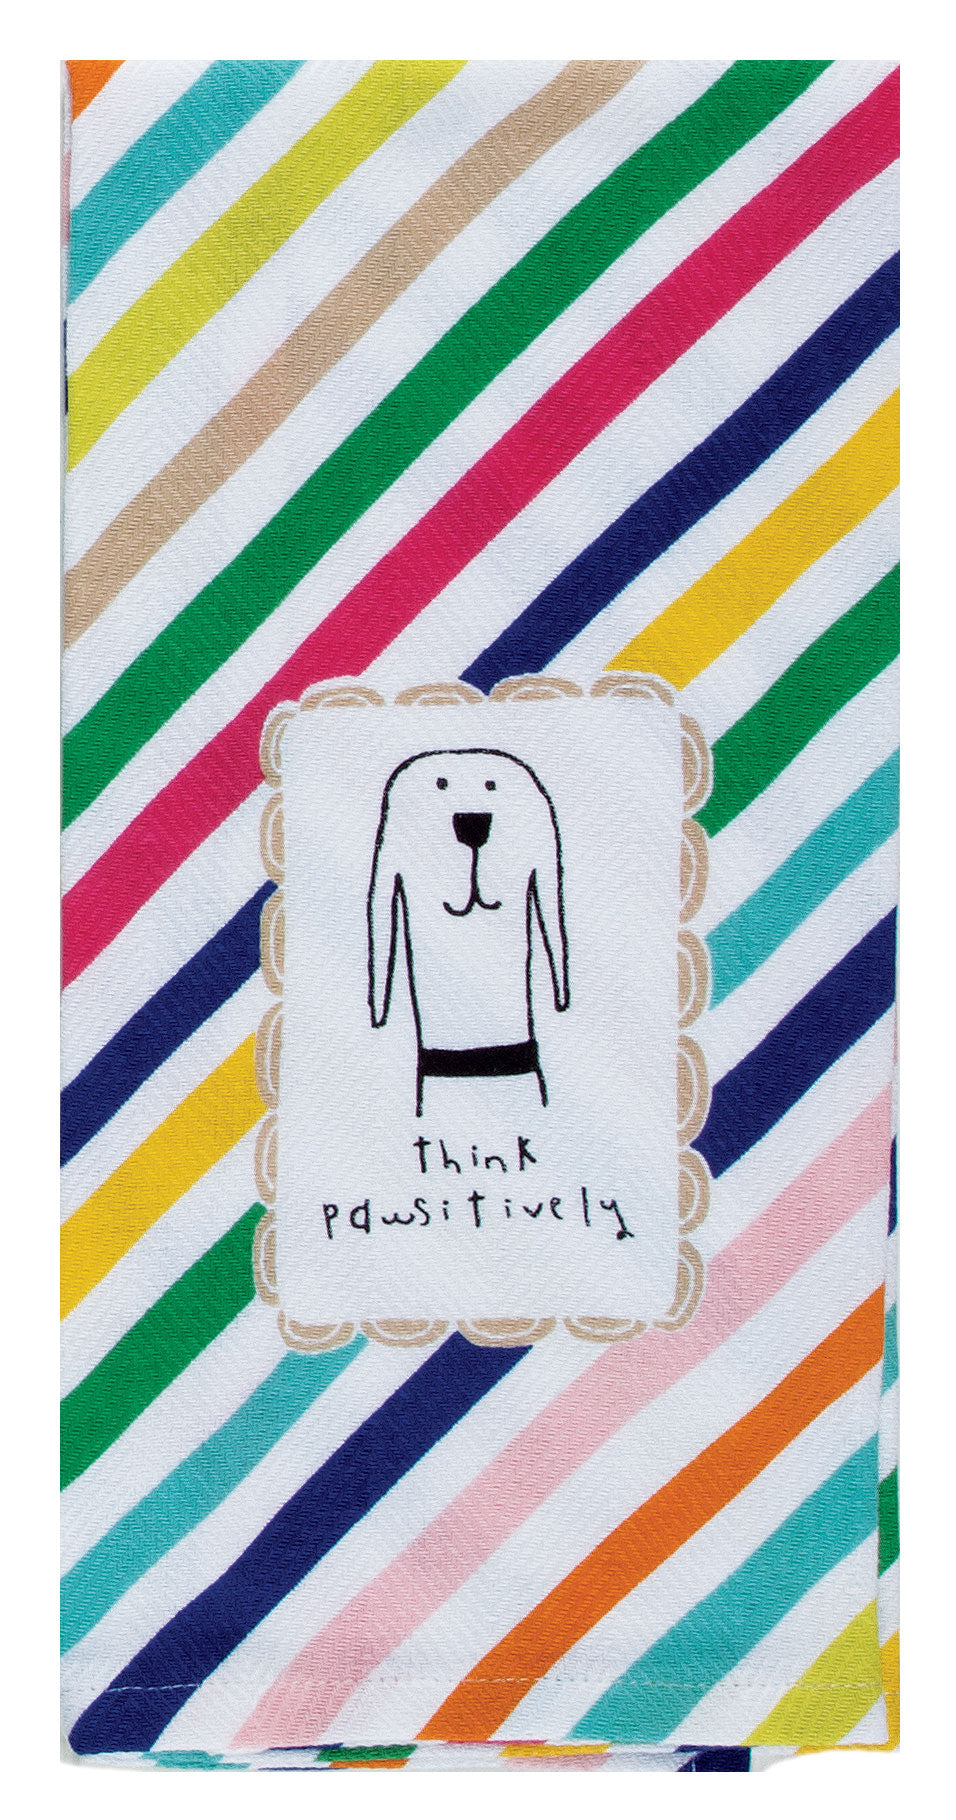 THINK PAWSITIVELY TEA TOWEL - Molly's! A Chic and Unique Boutique